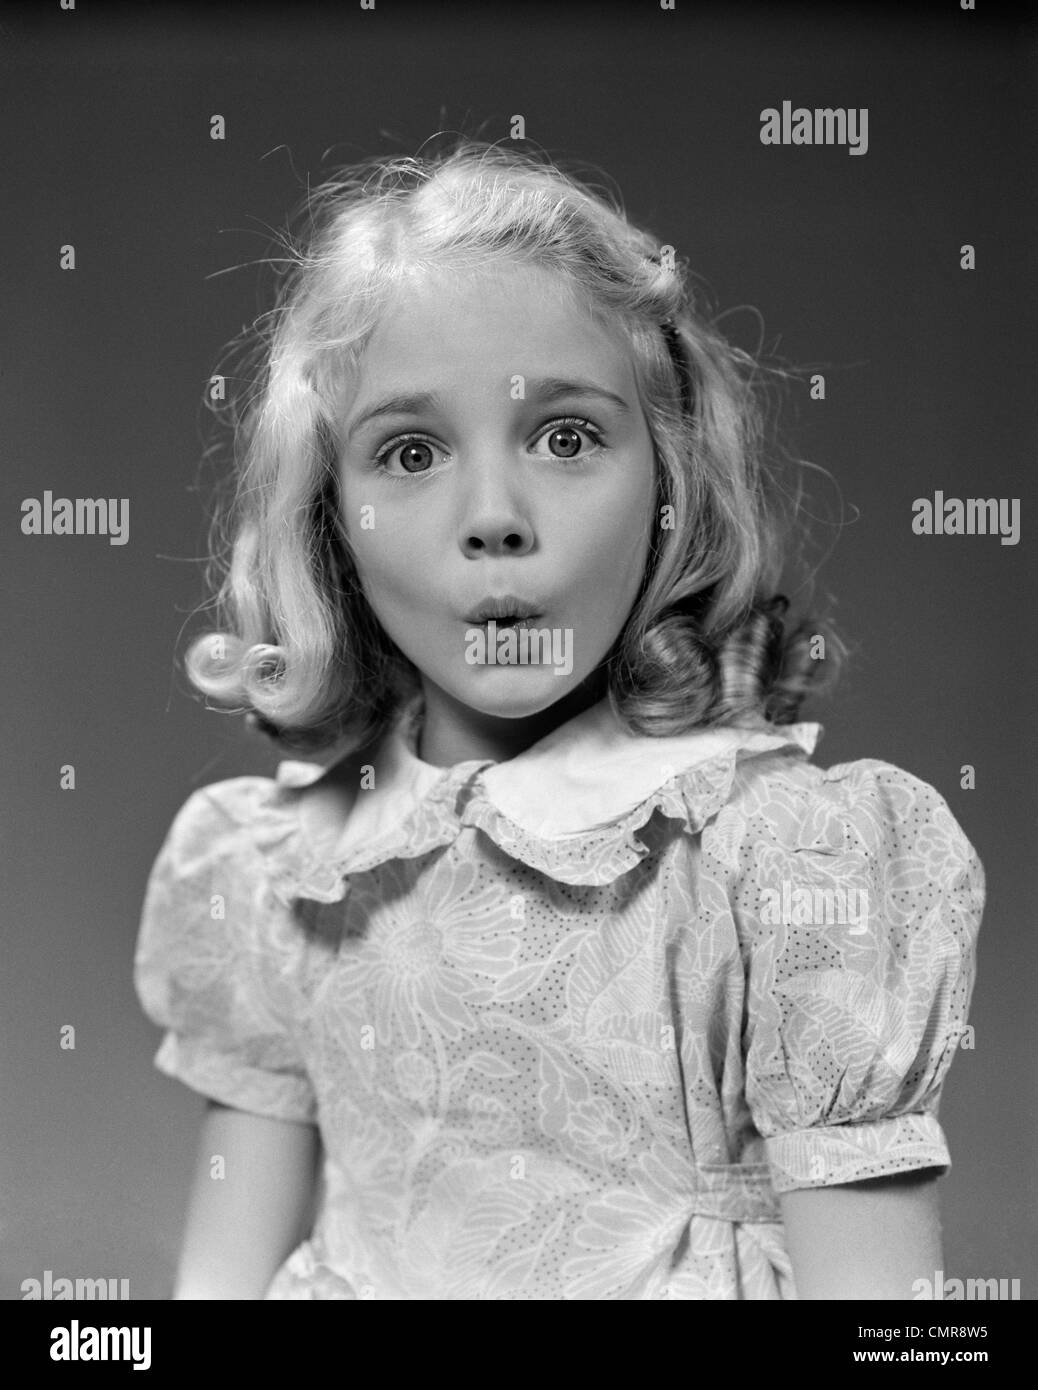 1940s 1950s BLOND GIRL WHISTLING LIPS PUCKERED EYES WIDE OPEN LOOKING AT CAMERA - Stock Image